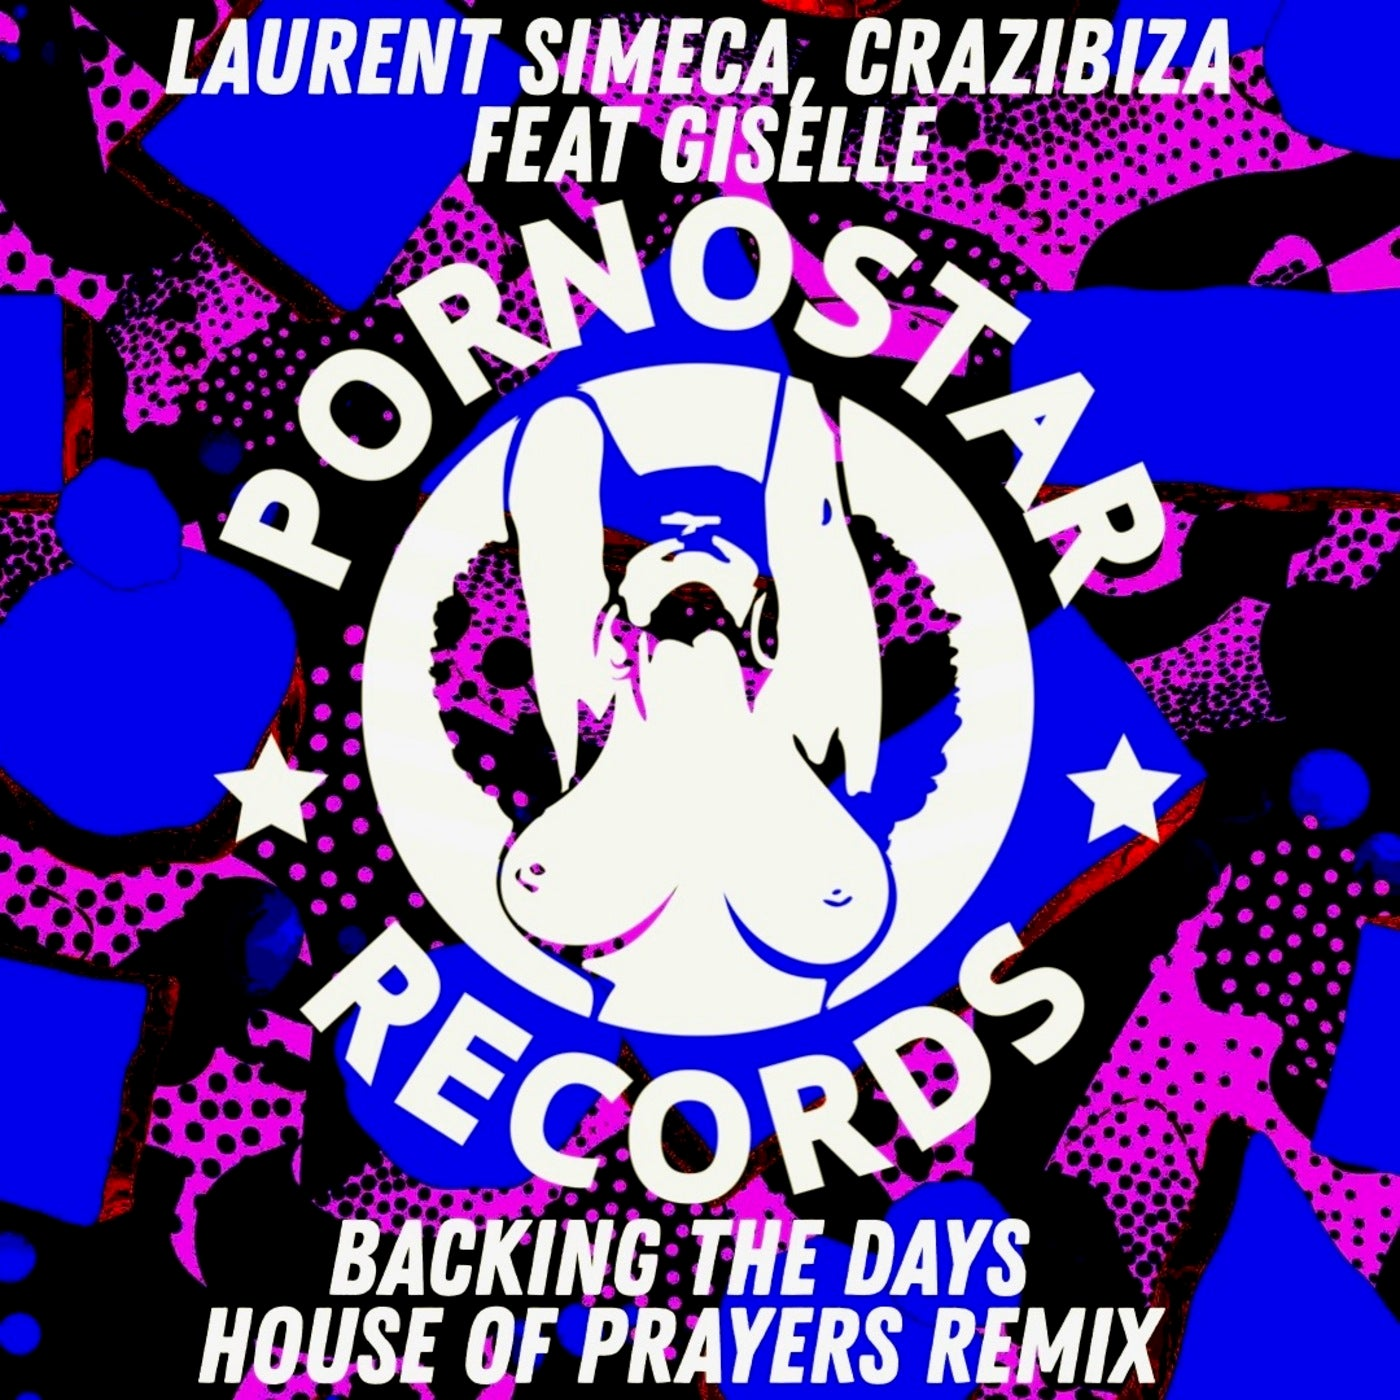 Backing The Days (House Of Prayers Remix)